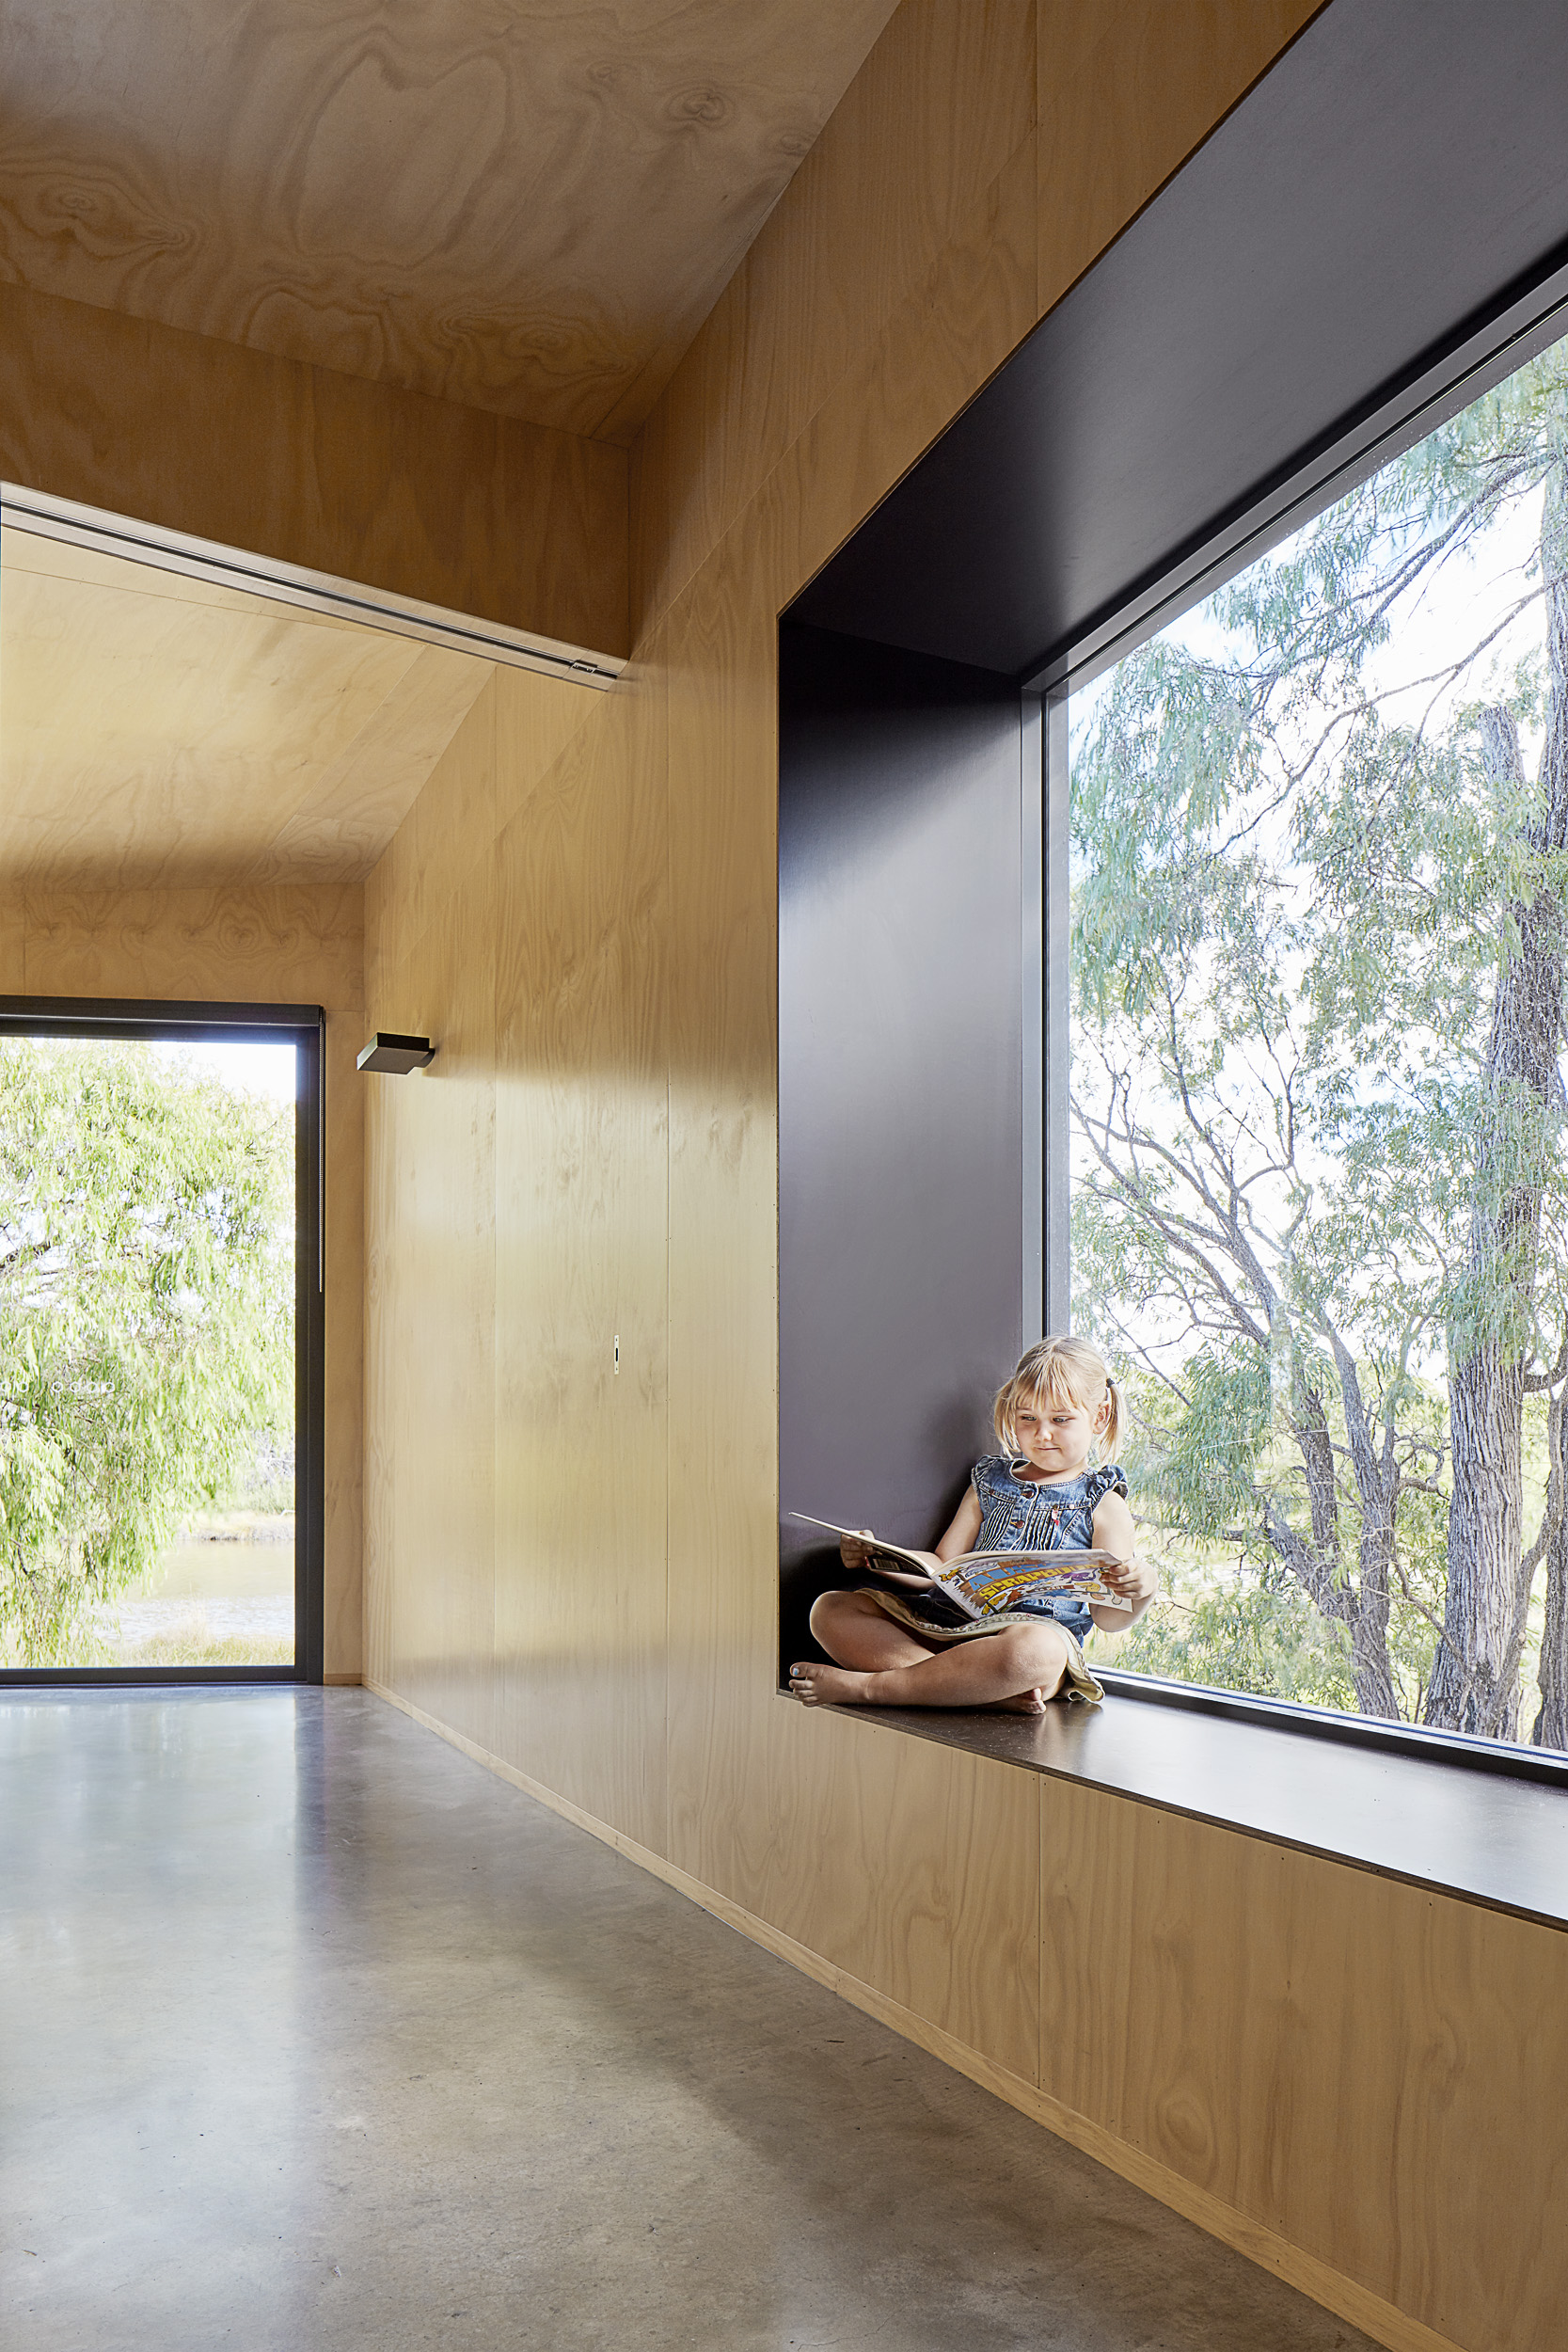 82 Degrees By Meaghan White Architect Local Australian Design And Interiors Quindalup, Wa Image 7